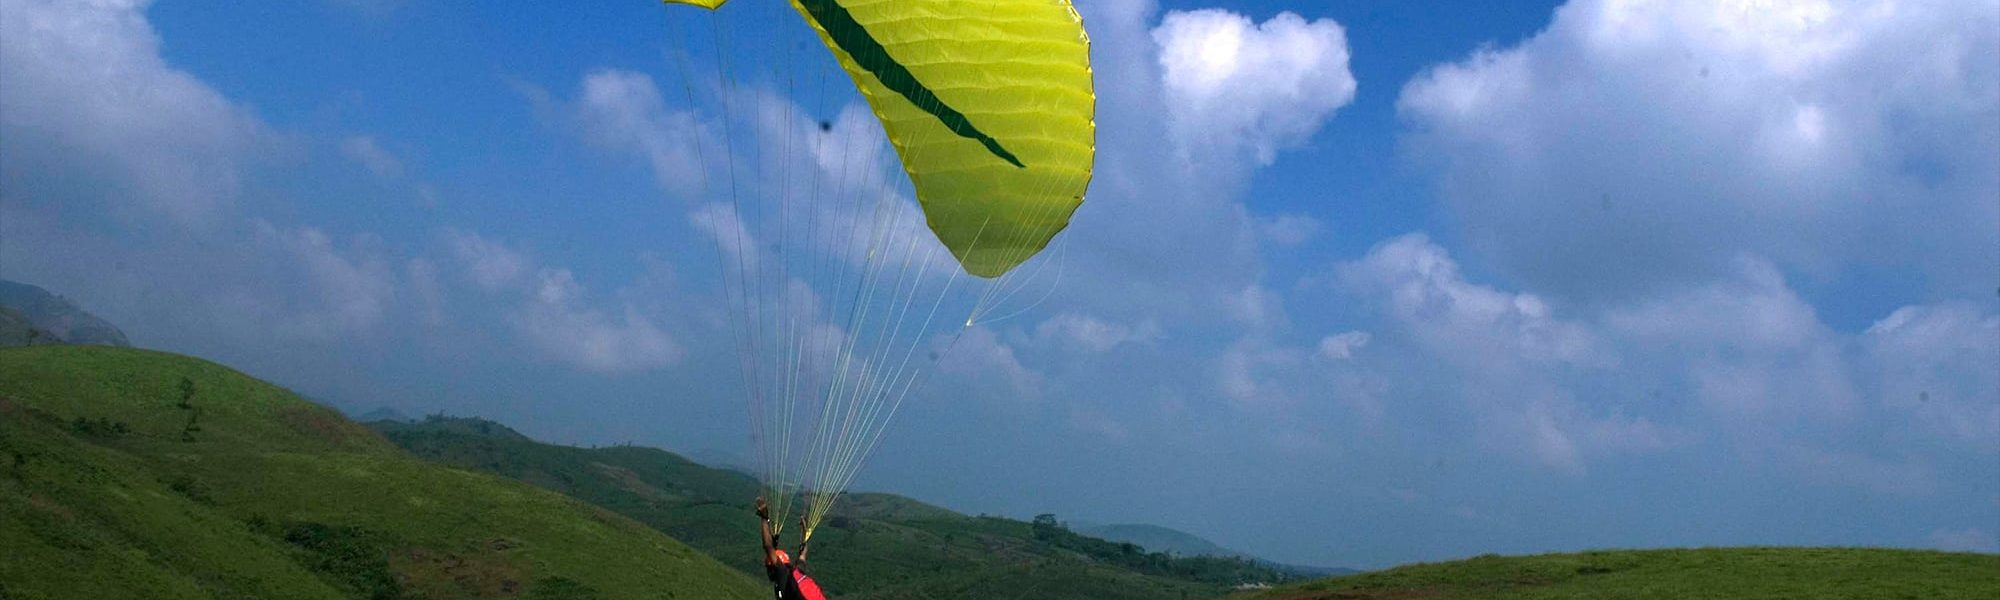 Soar High and Explore the Sky! My Paragliding experience at Vagamon.